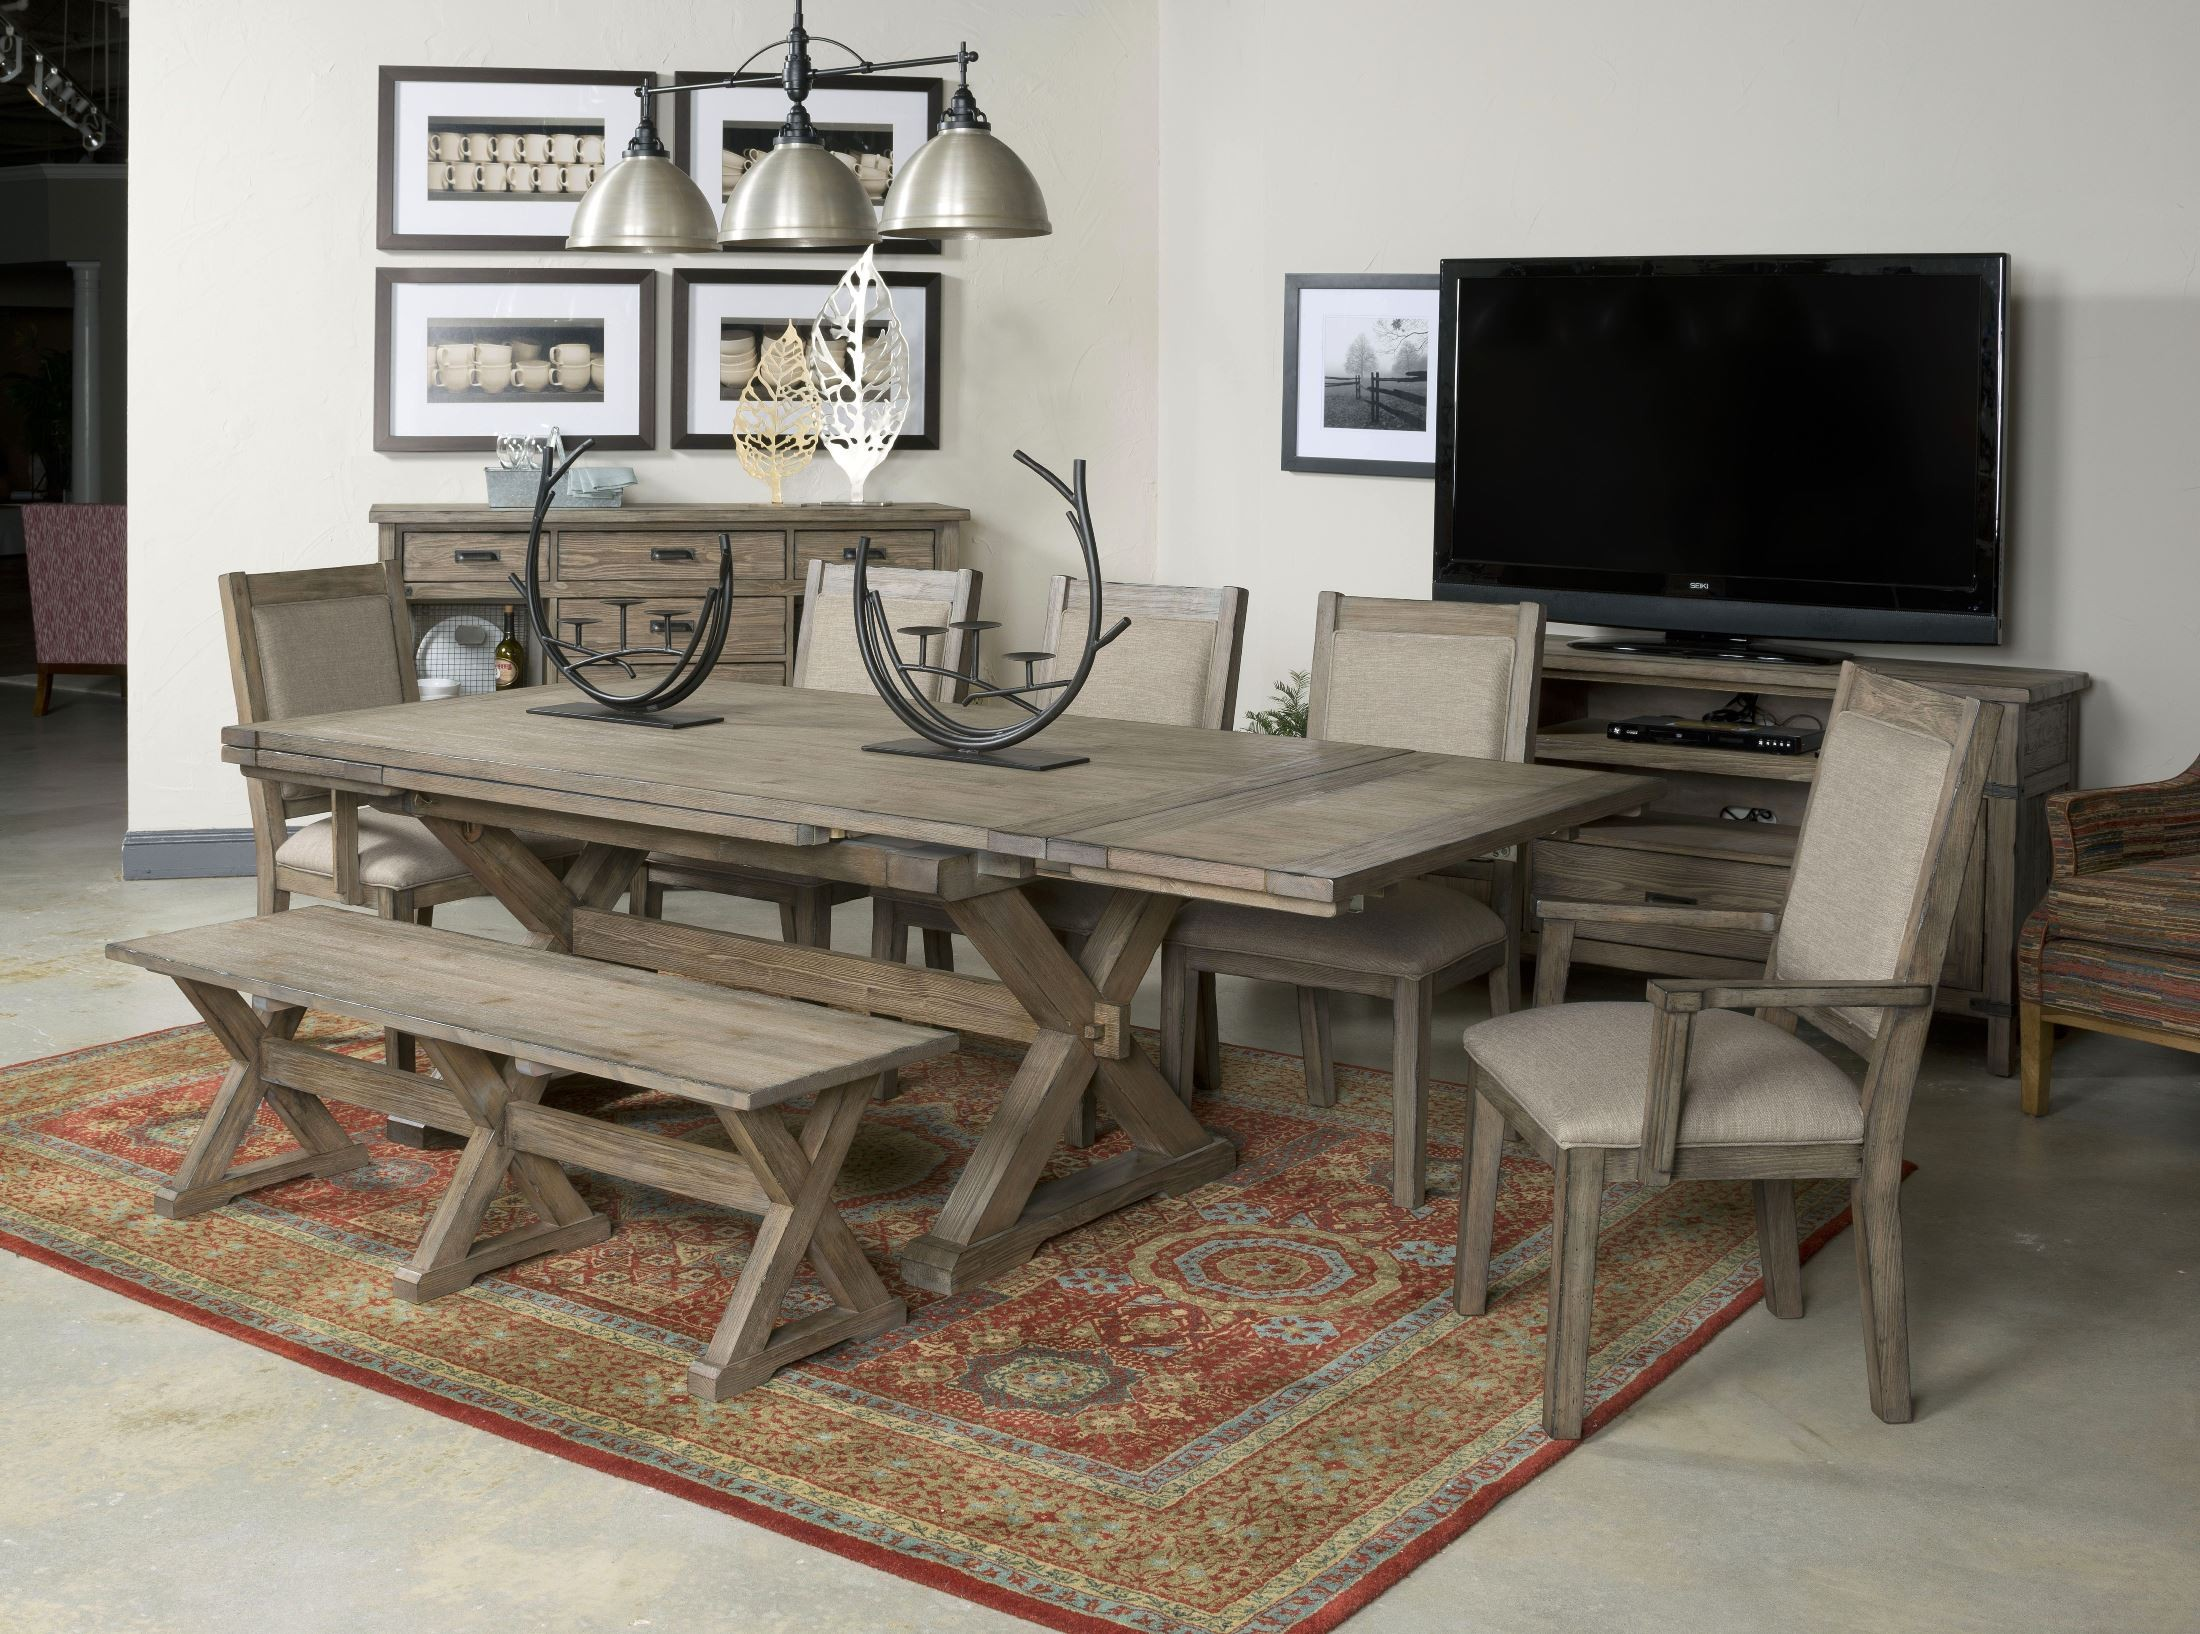 Foundry Extendable Saw Buck Dining Table · Kincaid. 577170. 577171. 577172.  577173. 577174. 577175. 577176